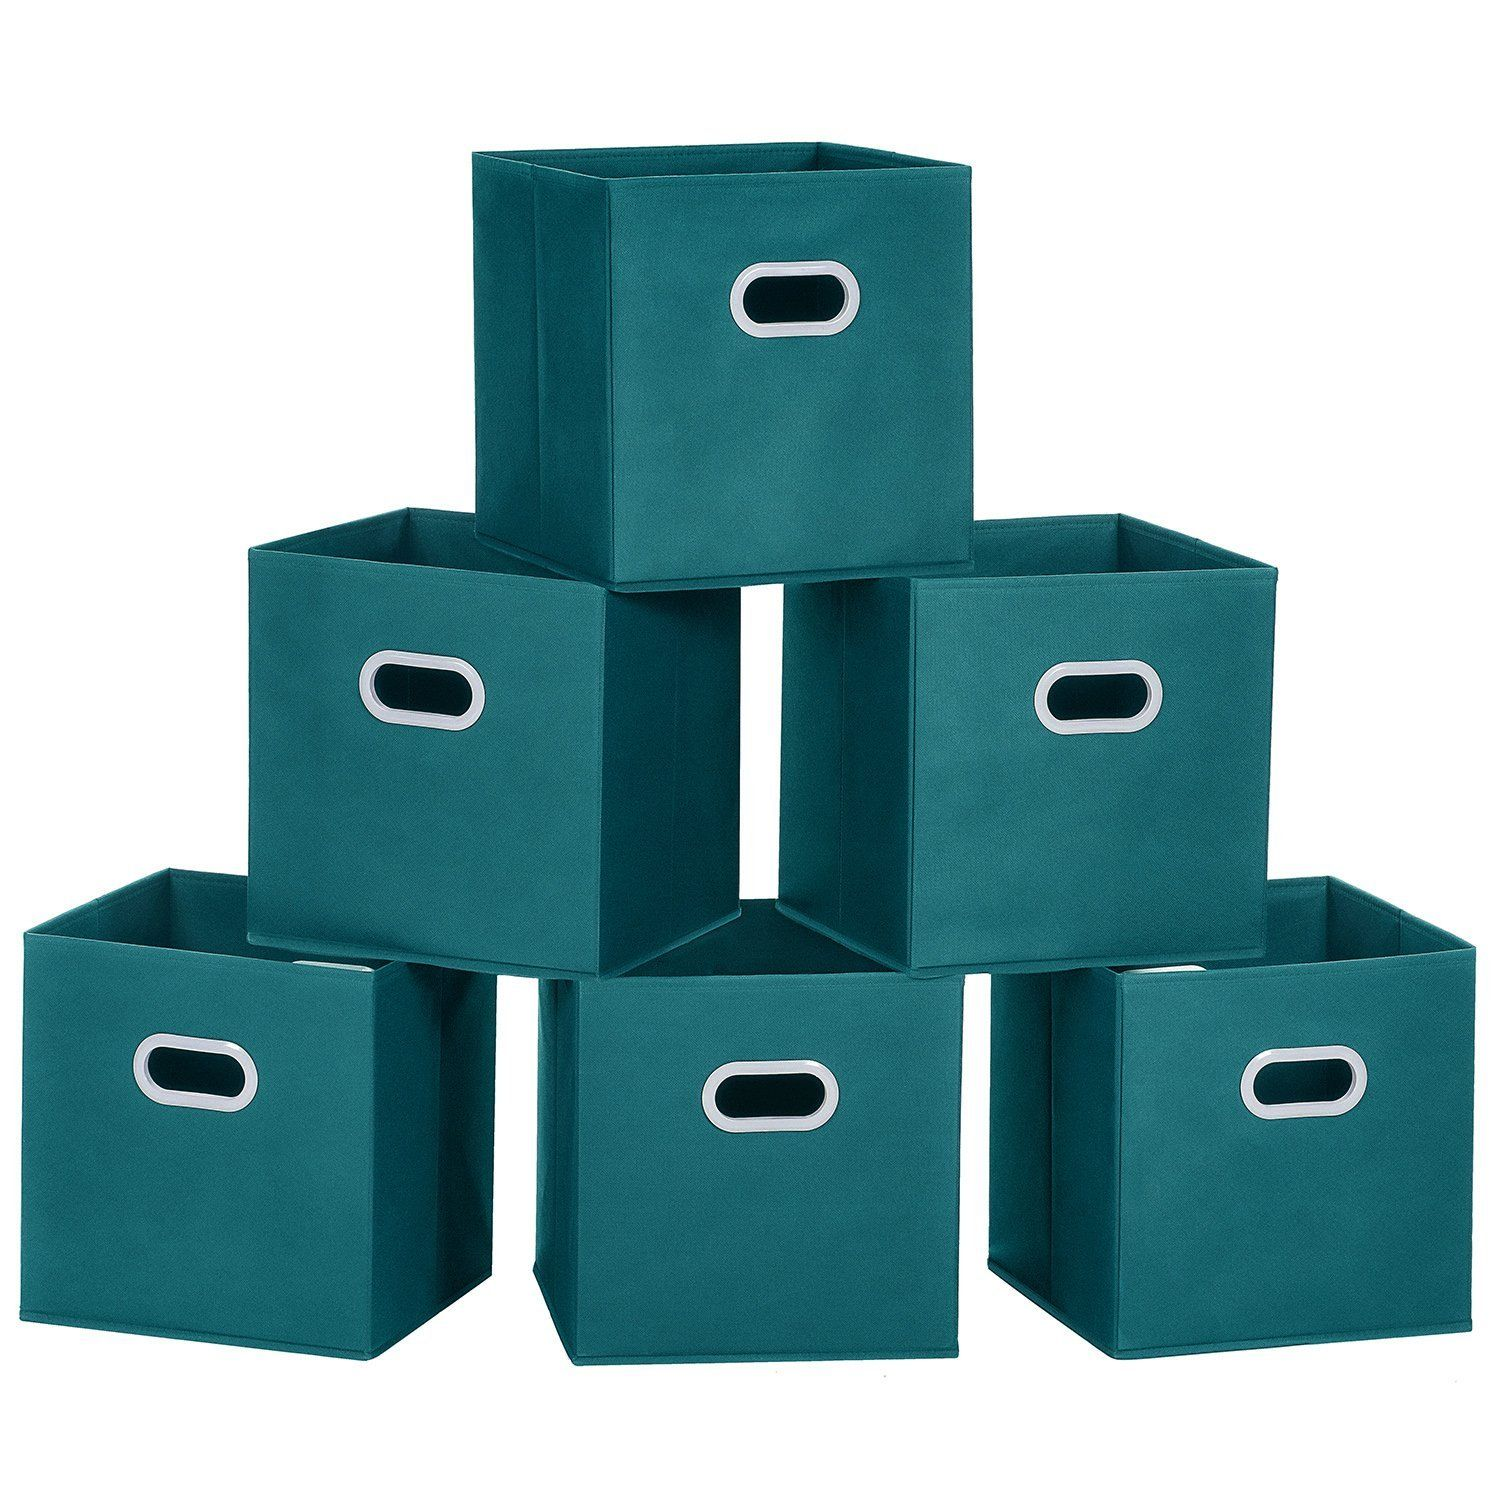 12 X 12 X 12 Inches 23 For Set Of 6 Amazon Com Maidmax Cloth Storage Bins Cubes Baskets Container Toy Storage Cubes Storage Bins Bedroom Drawer Organizer